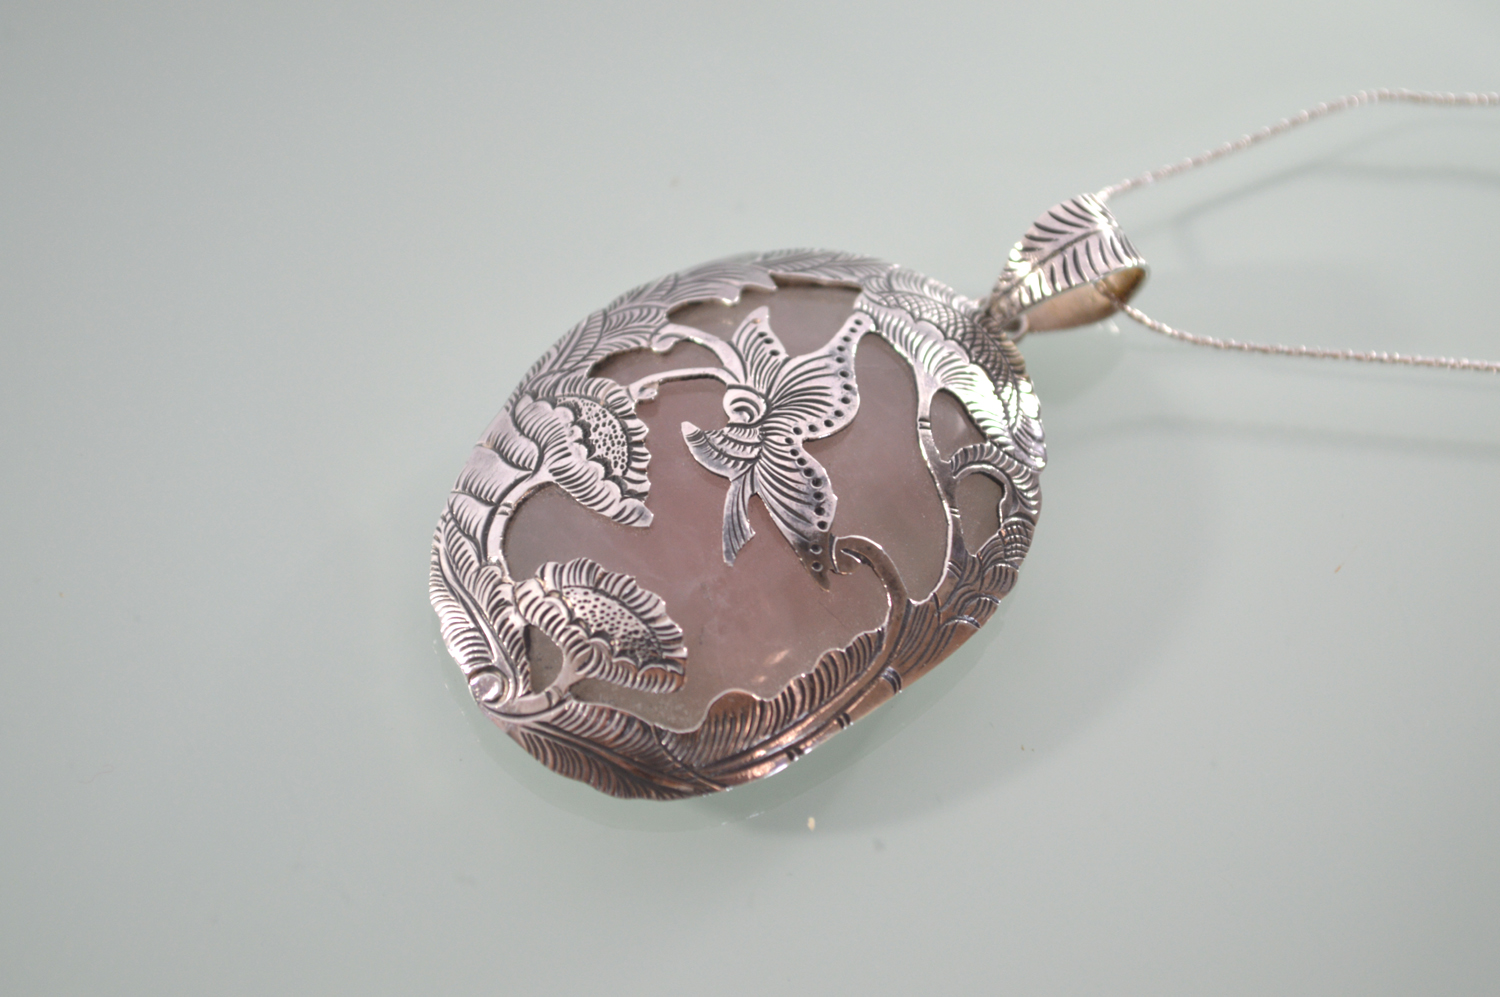 Butterfly embossed sterling silver and rose quartz pendant bali mantra silver rose quartz pendant silver rose quartz pendant angled mozeypictures